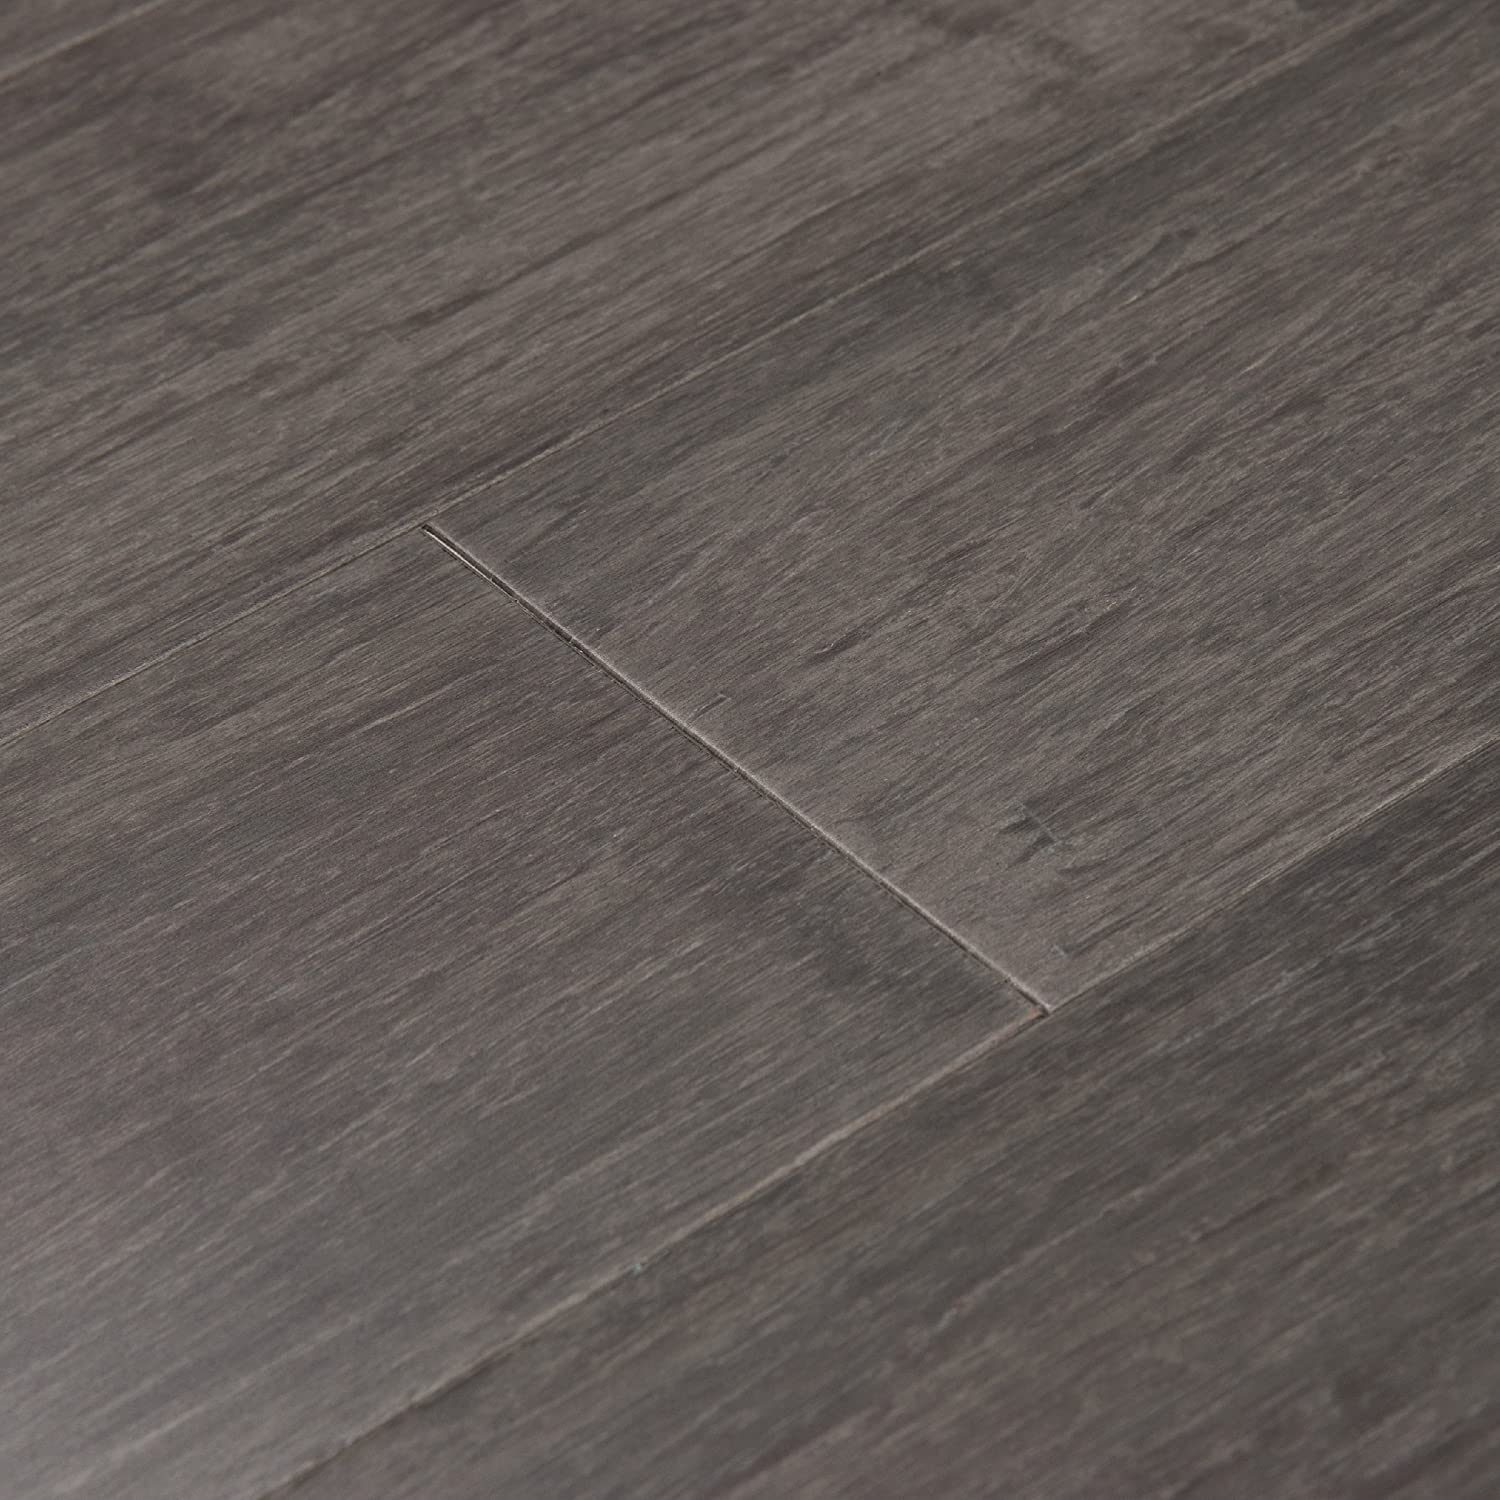 Cali Bamboo Solid Wide Bamboo Flooring Eclipse Gray